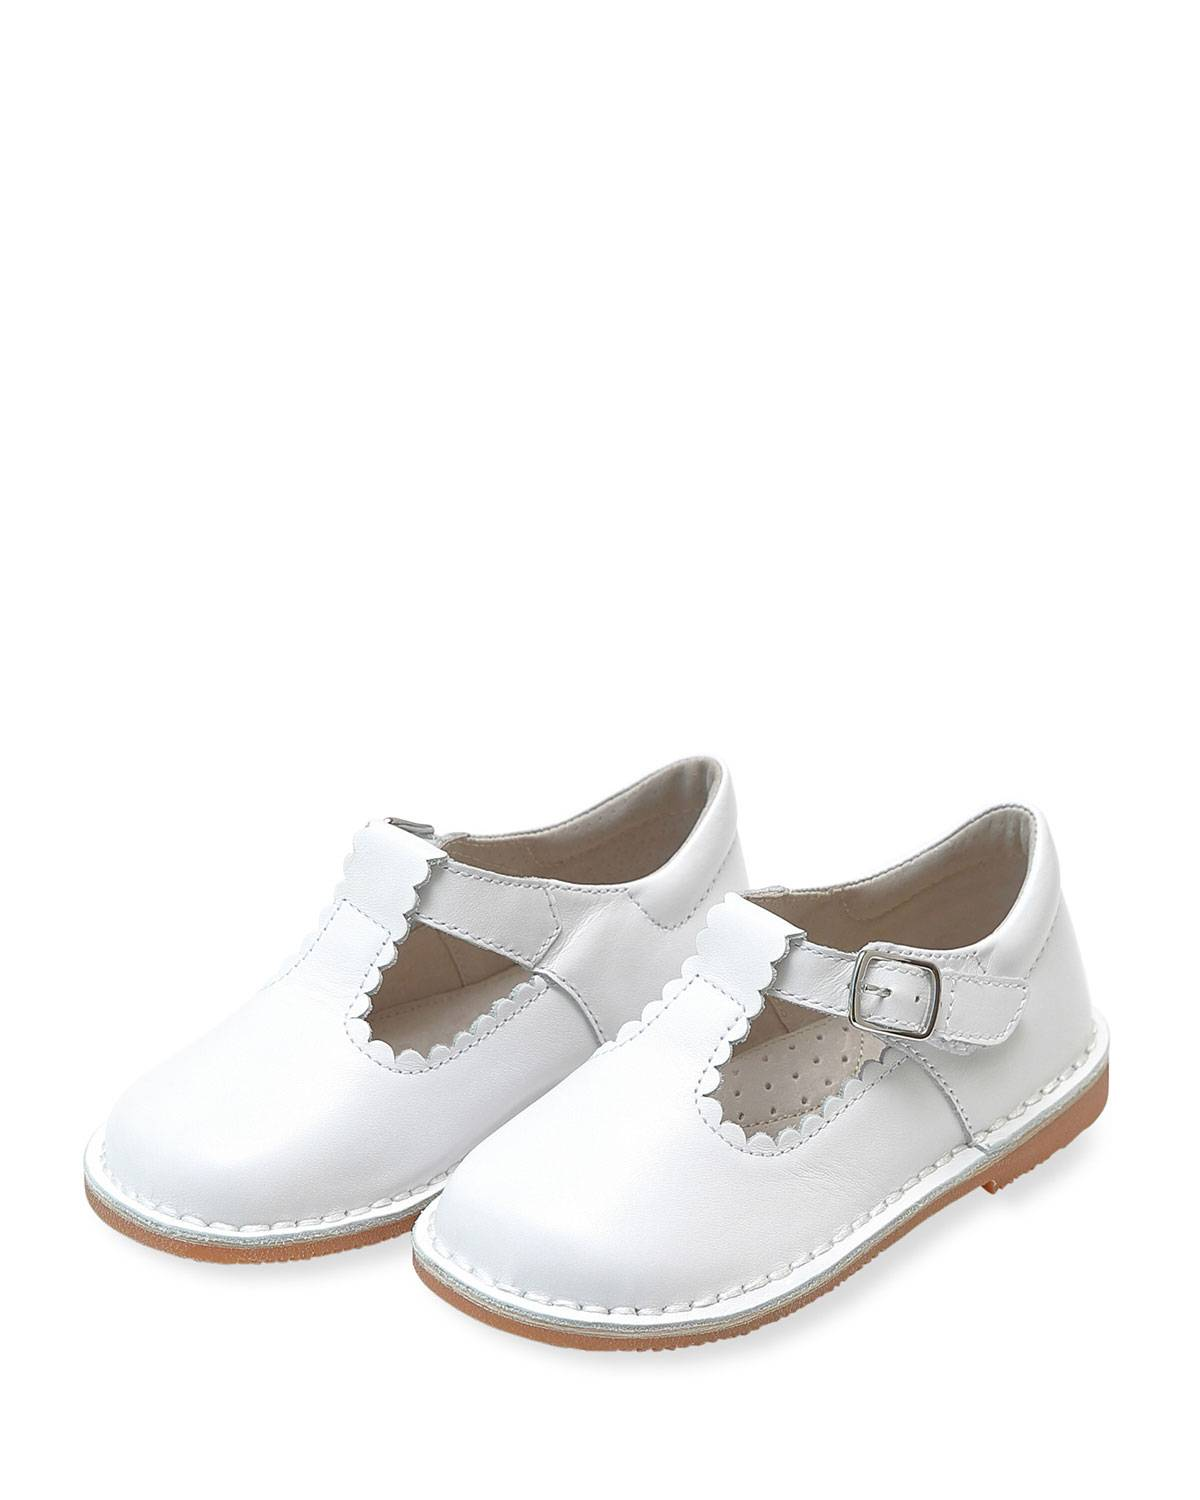 L'Amour Shoes Selina Scalloped T-Strap Leather Mary Janes, Baby/Toddler/Kids - Size: 10 Tod